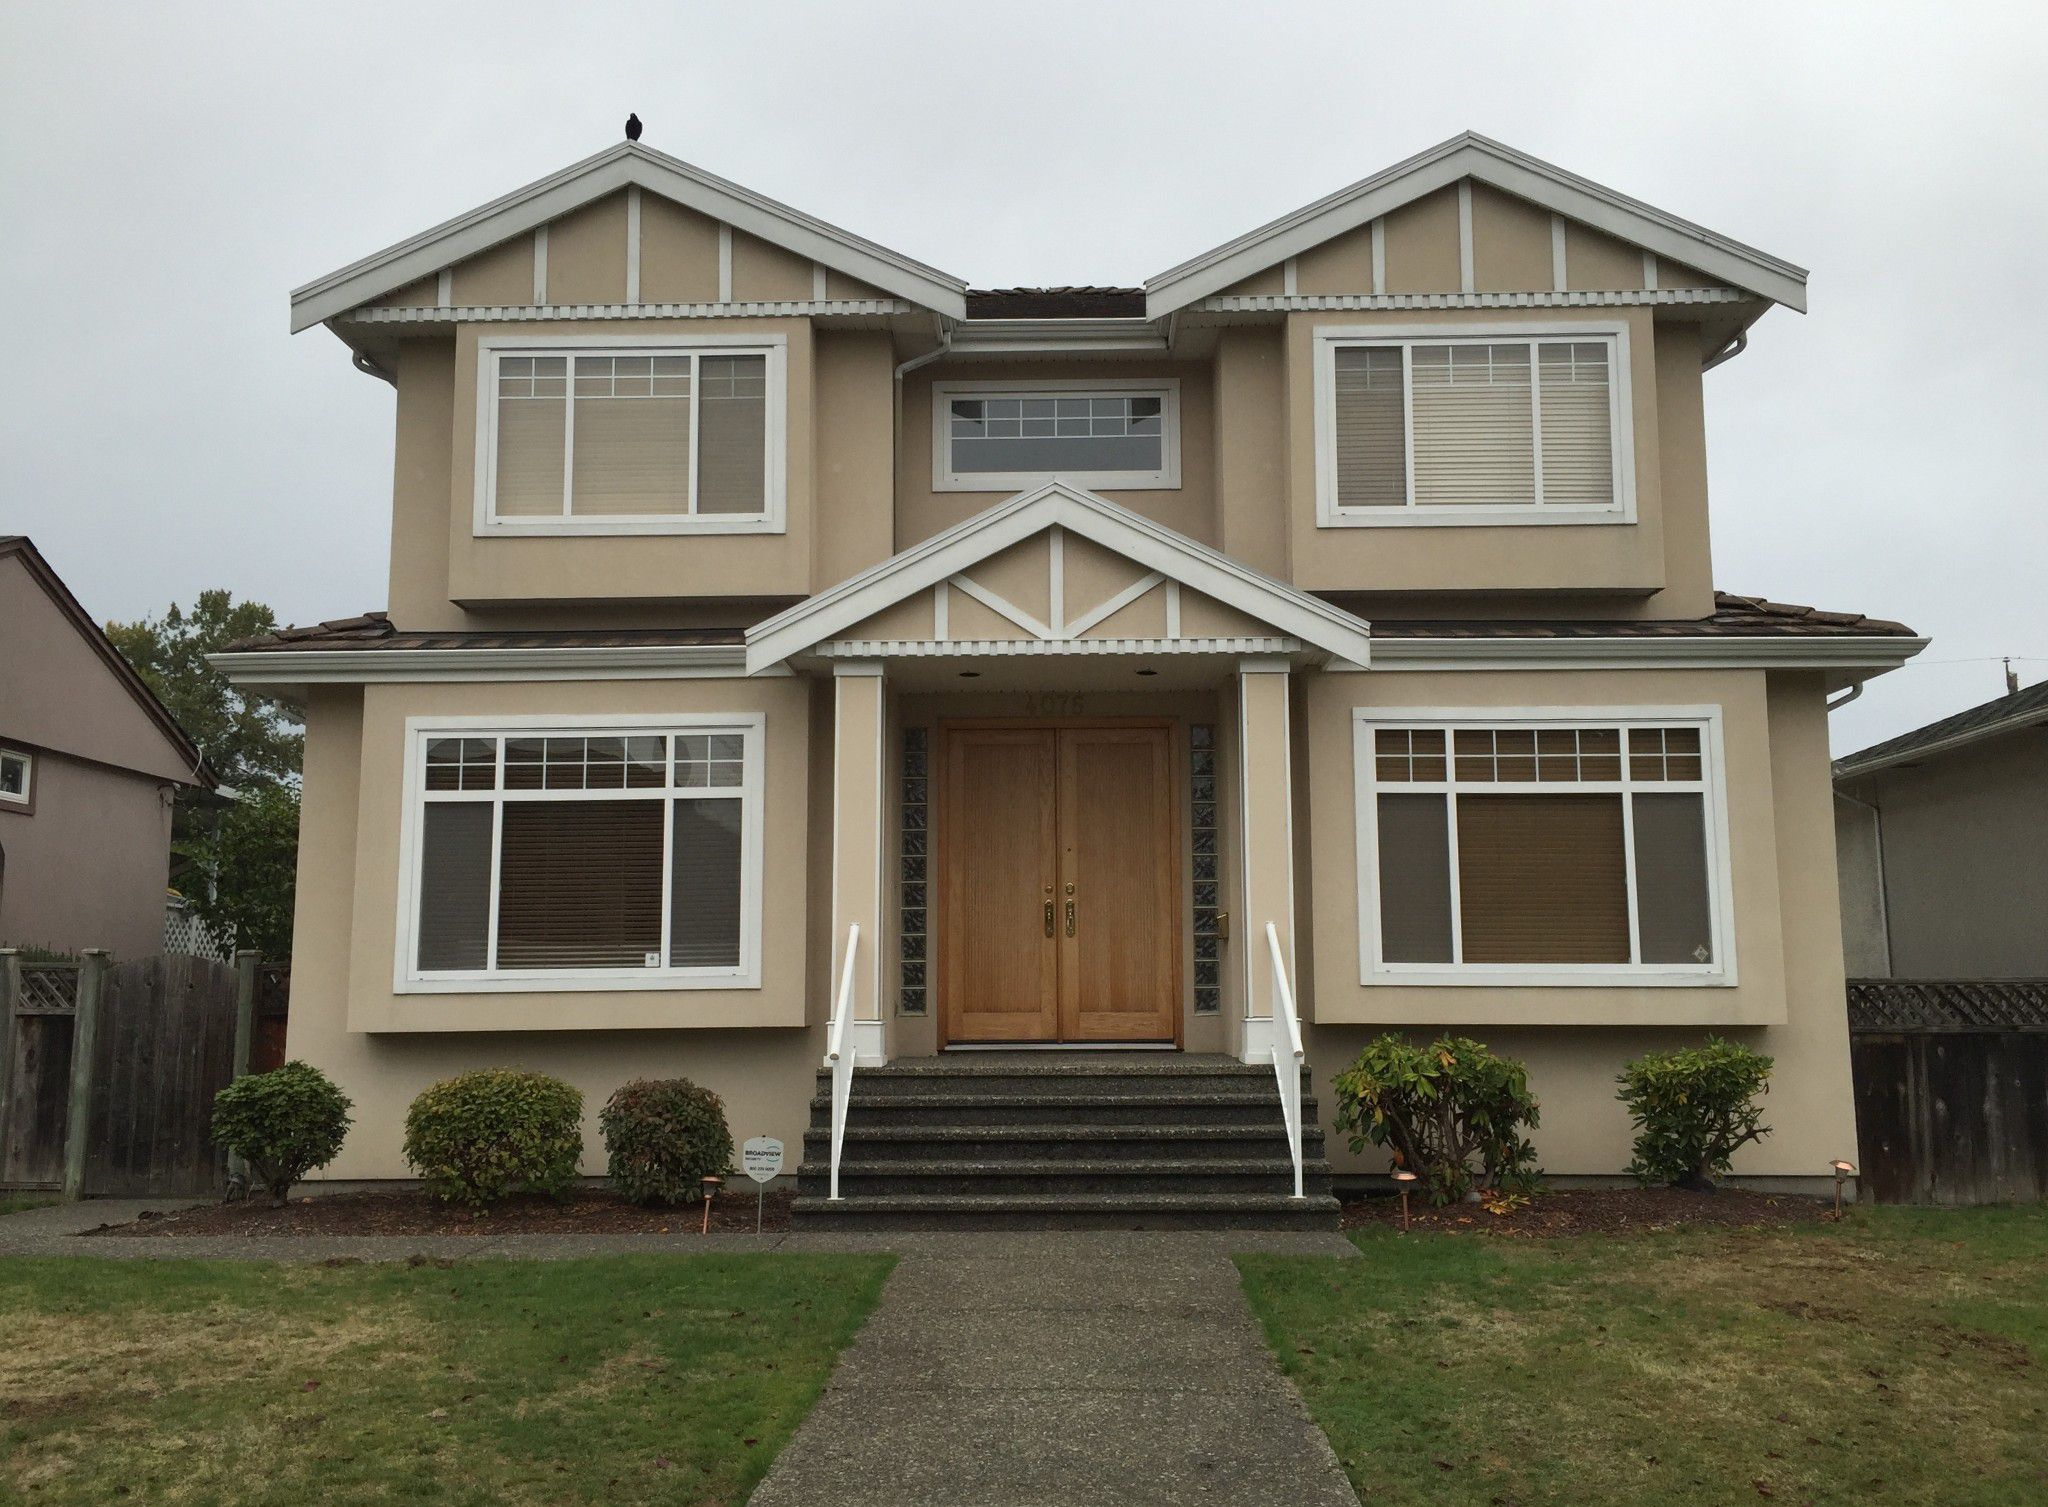 Main Photo: 4075 W 28th Ave in Vancouver: Dunbar House for sale (Vancouver West)  : MLS®# R2008065